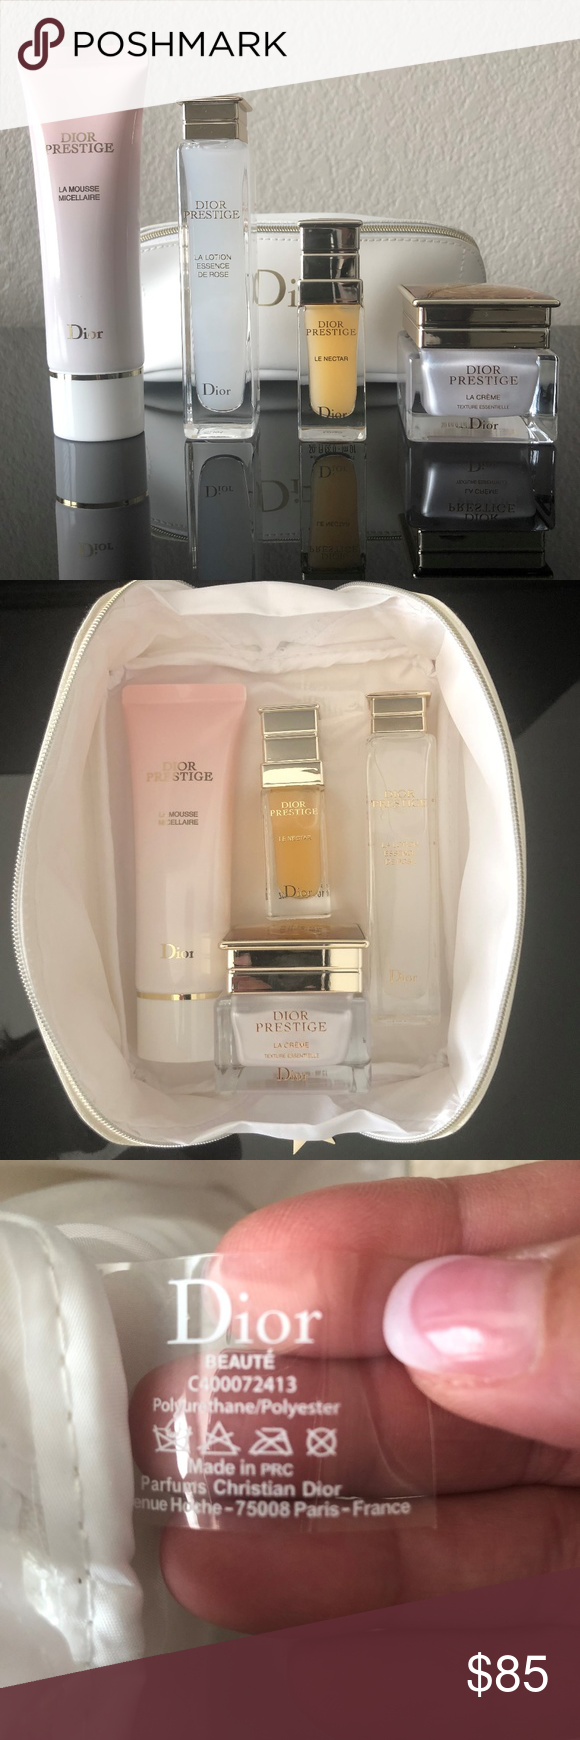 Prestige Deluxe Travel Set New Never Used Dior White Rectangle Pouch With Star Logo Zipper Closure Filled With Y Dior Makeup Star Logo Bottles And Jars